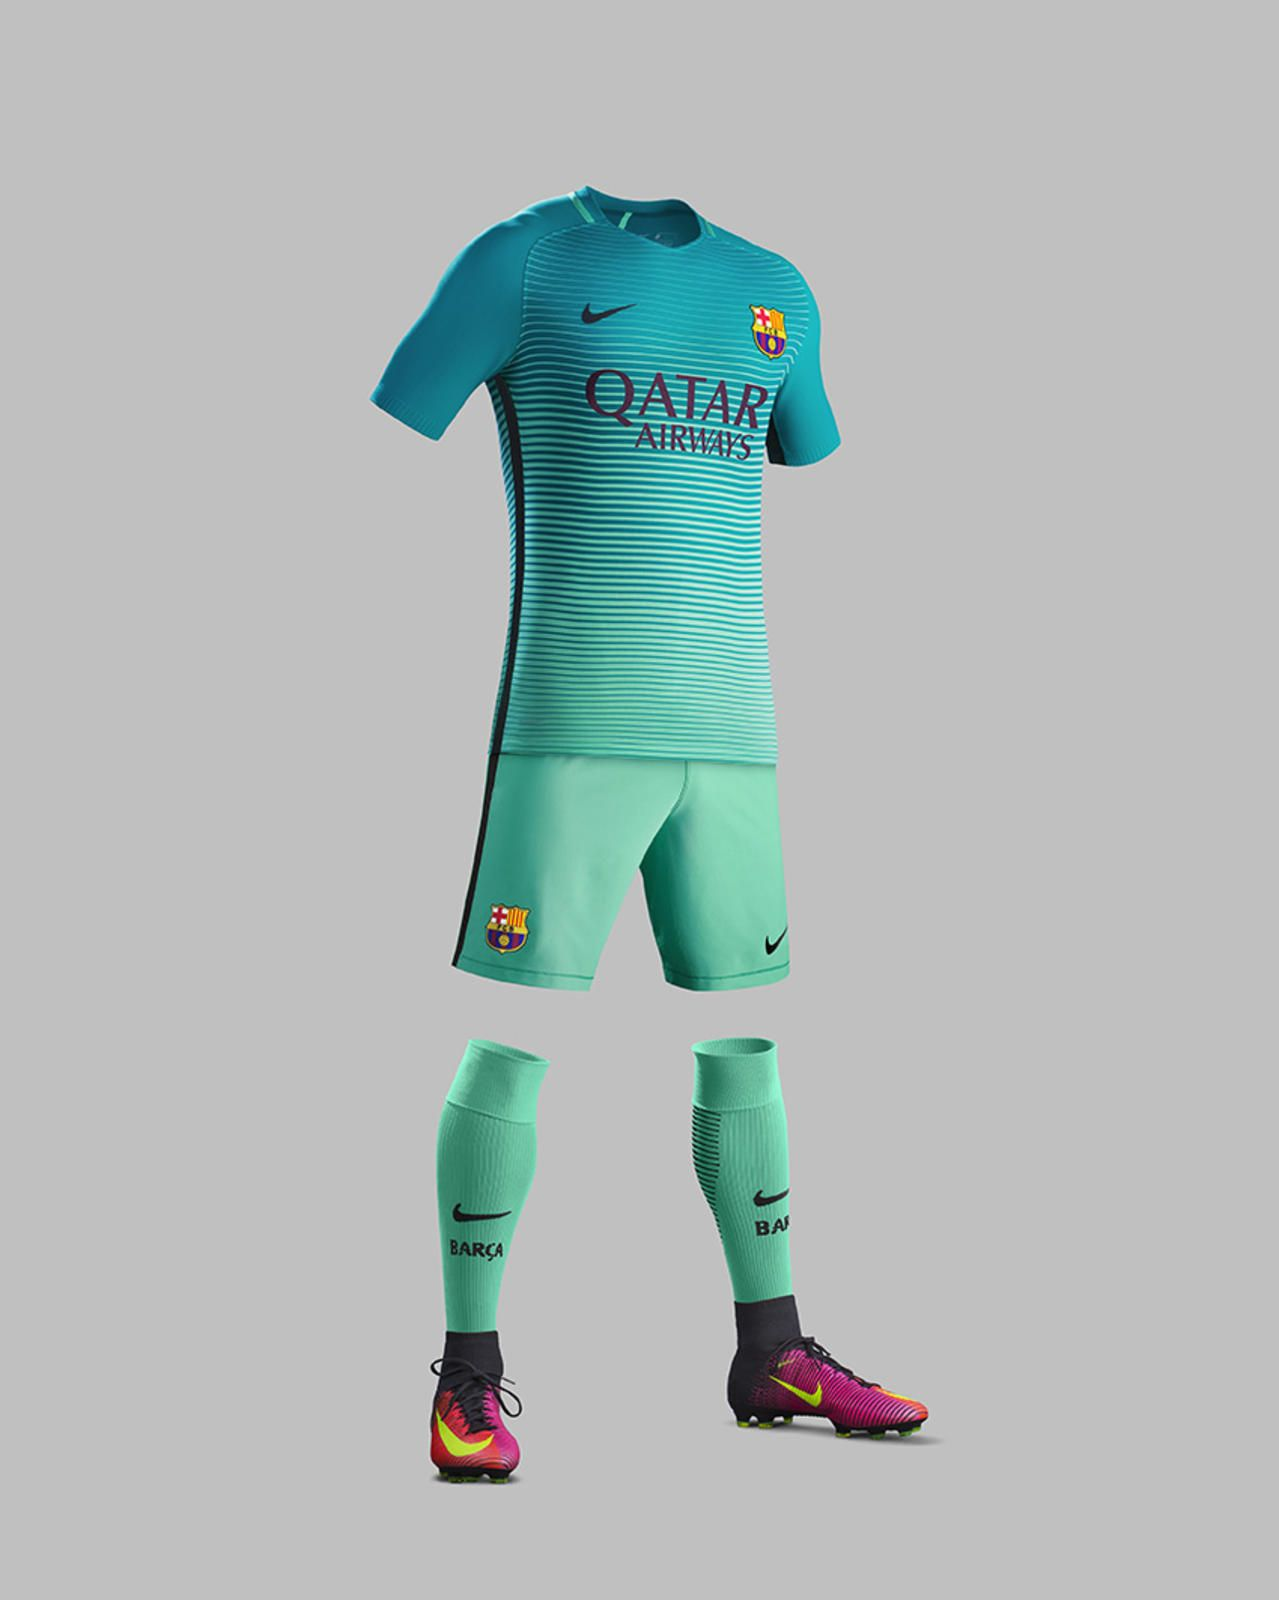 Terceira camisa do Barcelona 2016-2017 Nike kit 0673f3669d2de